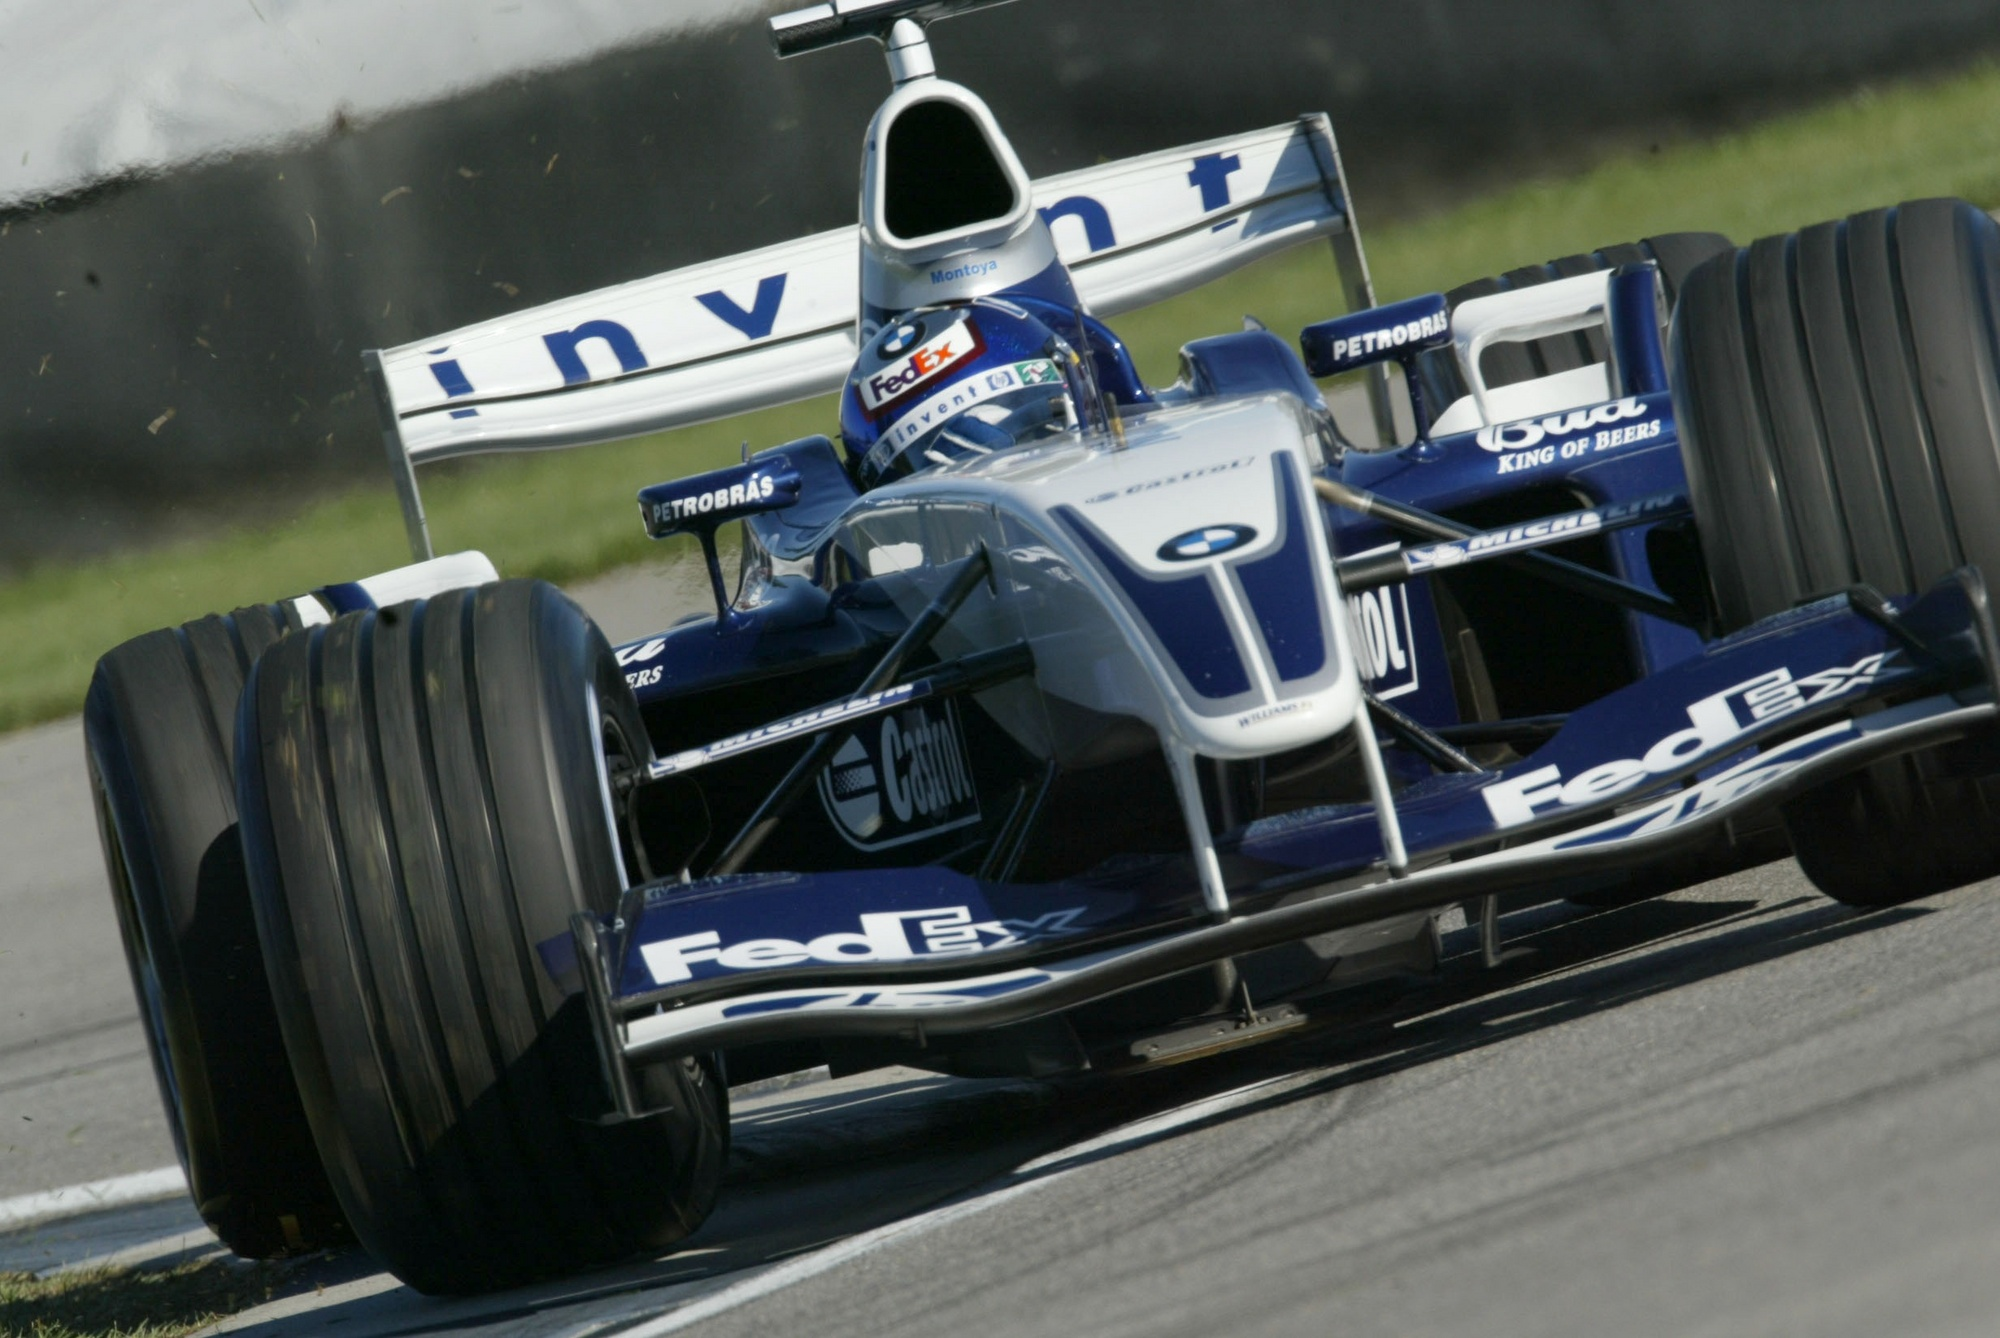 Williams fw24 photo - 3